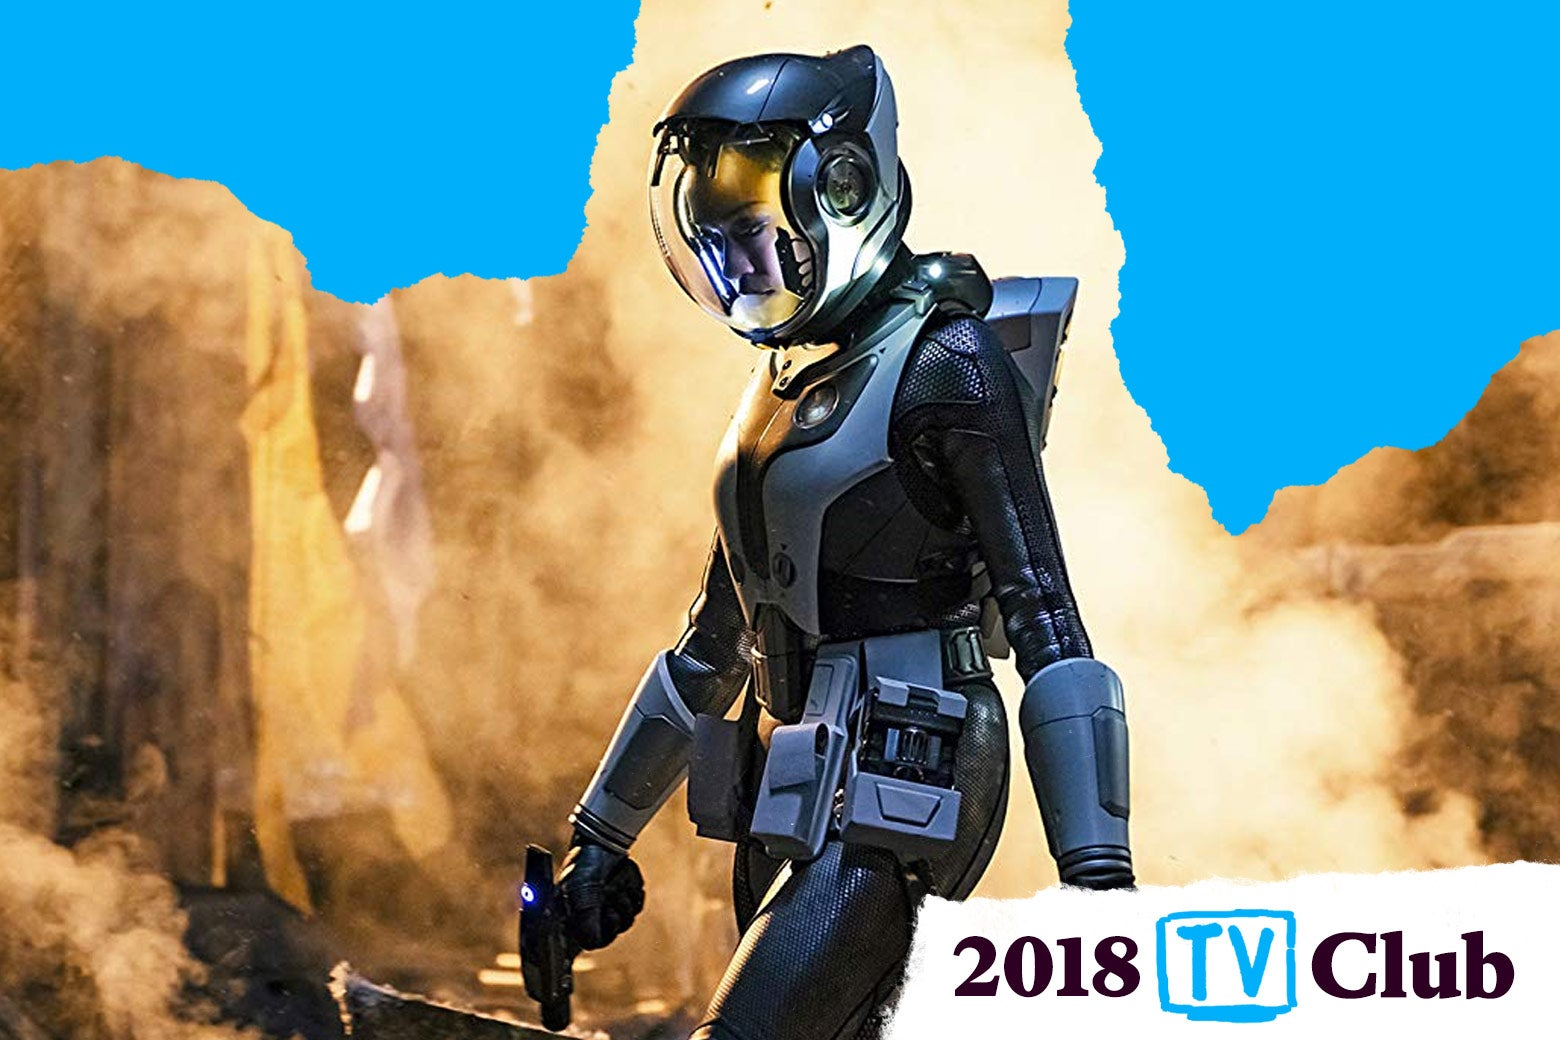 Still of spacesuited person from Star Trek Discovery with TV Club 2018 logo